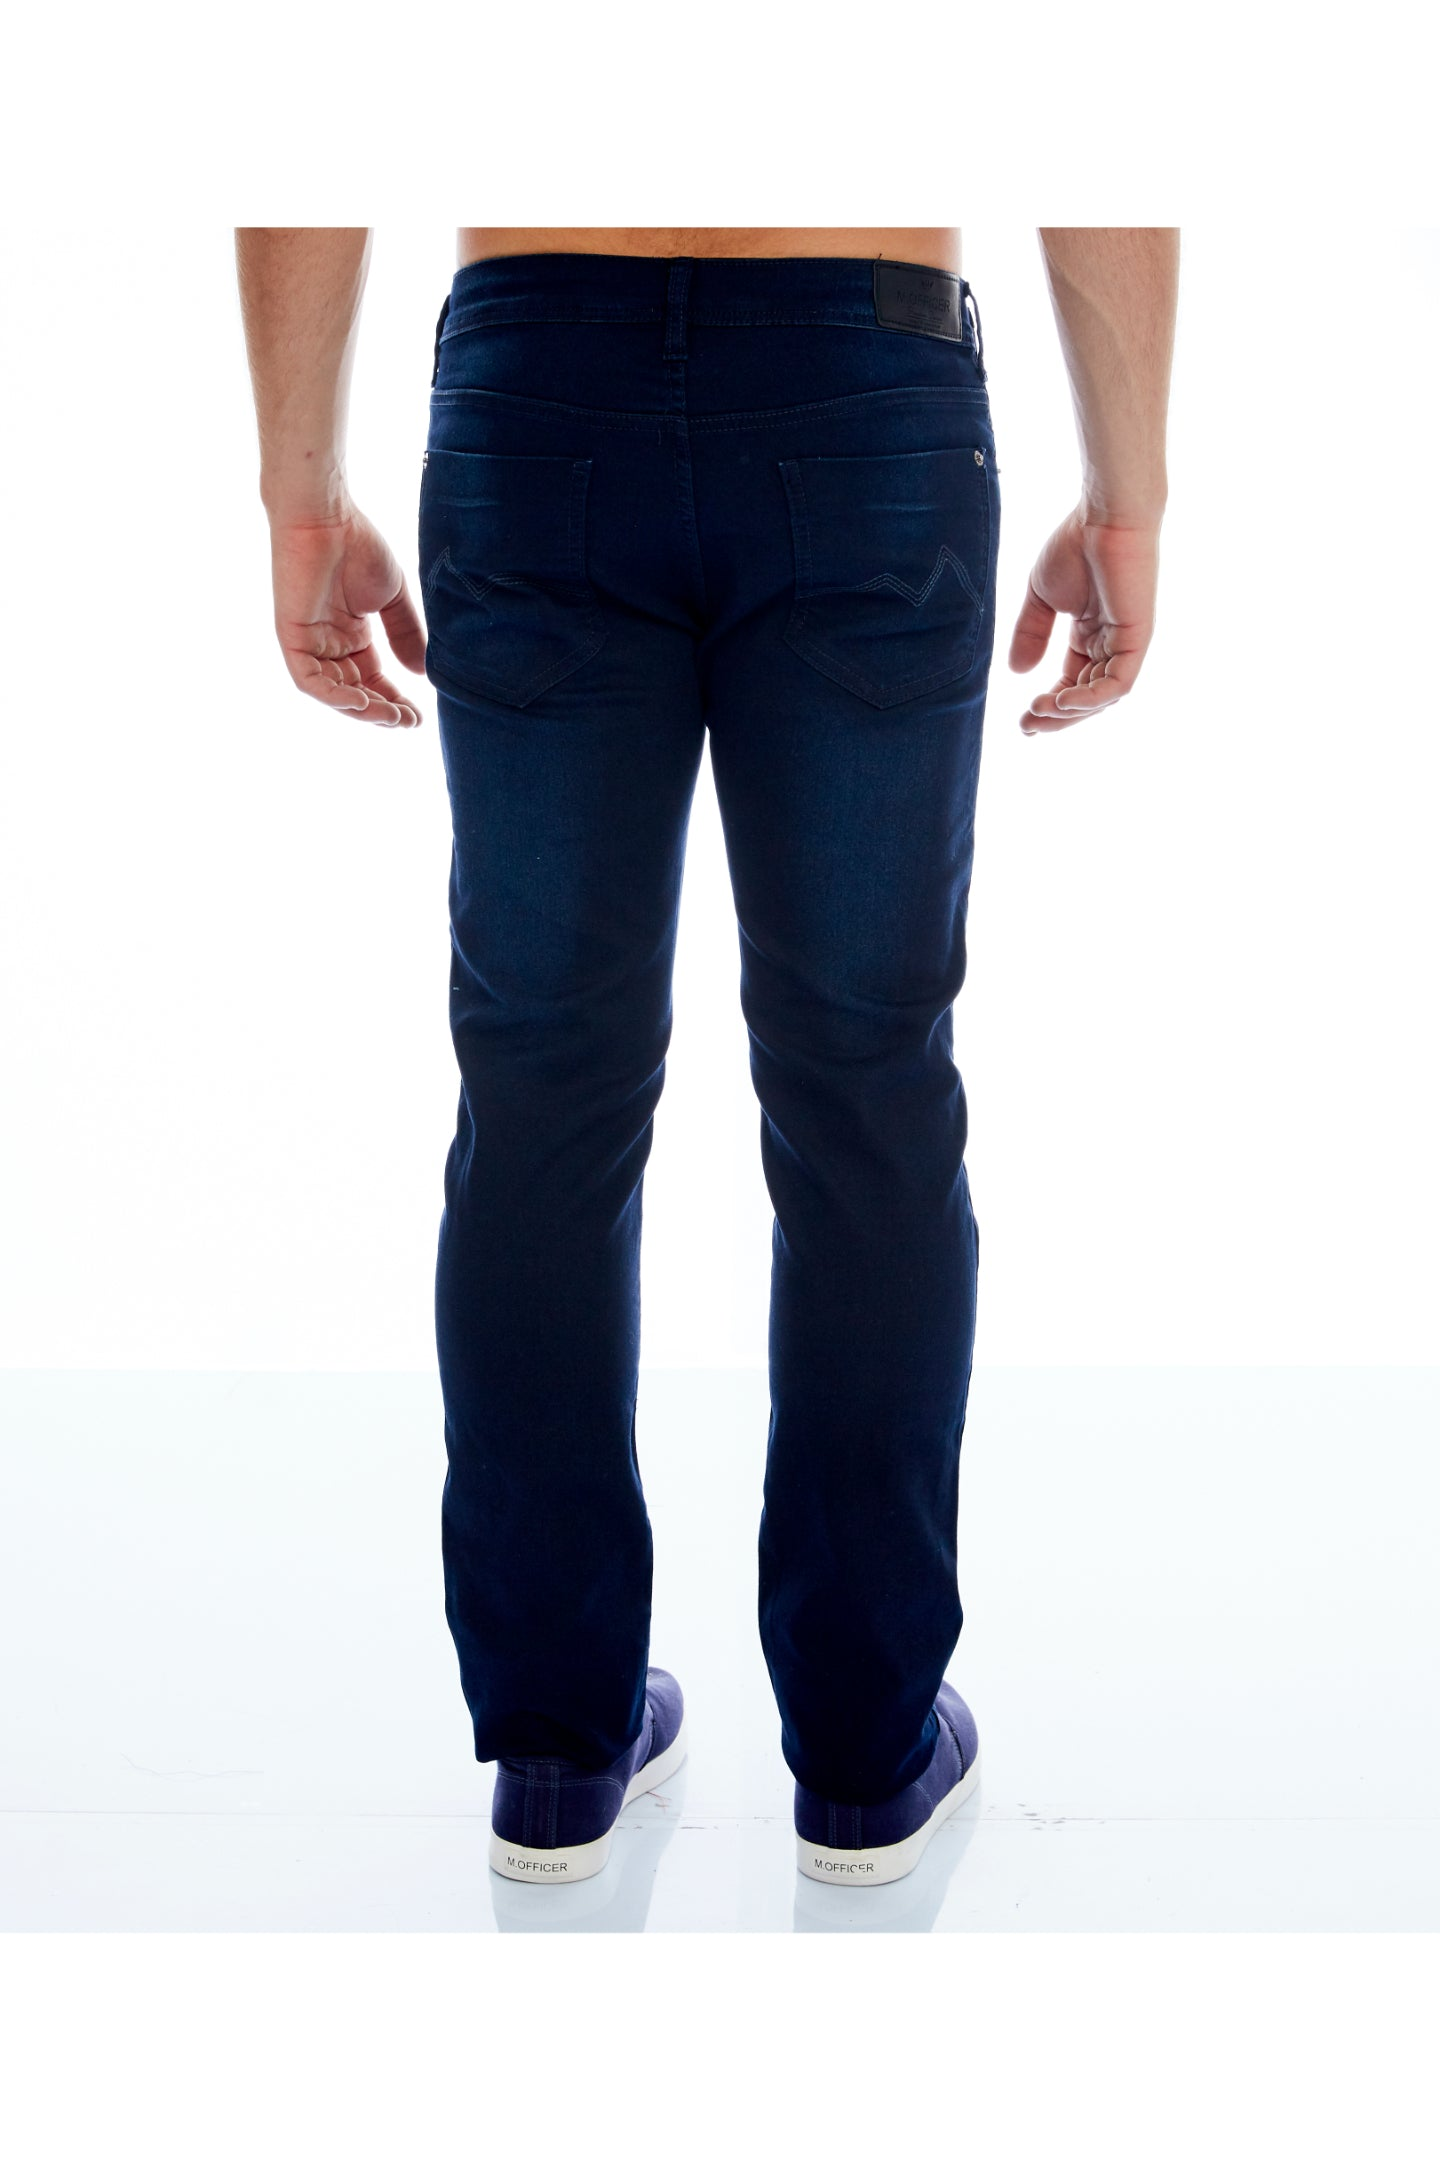 CALÇA JEANS SUPER COOL DARK BUE